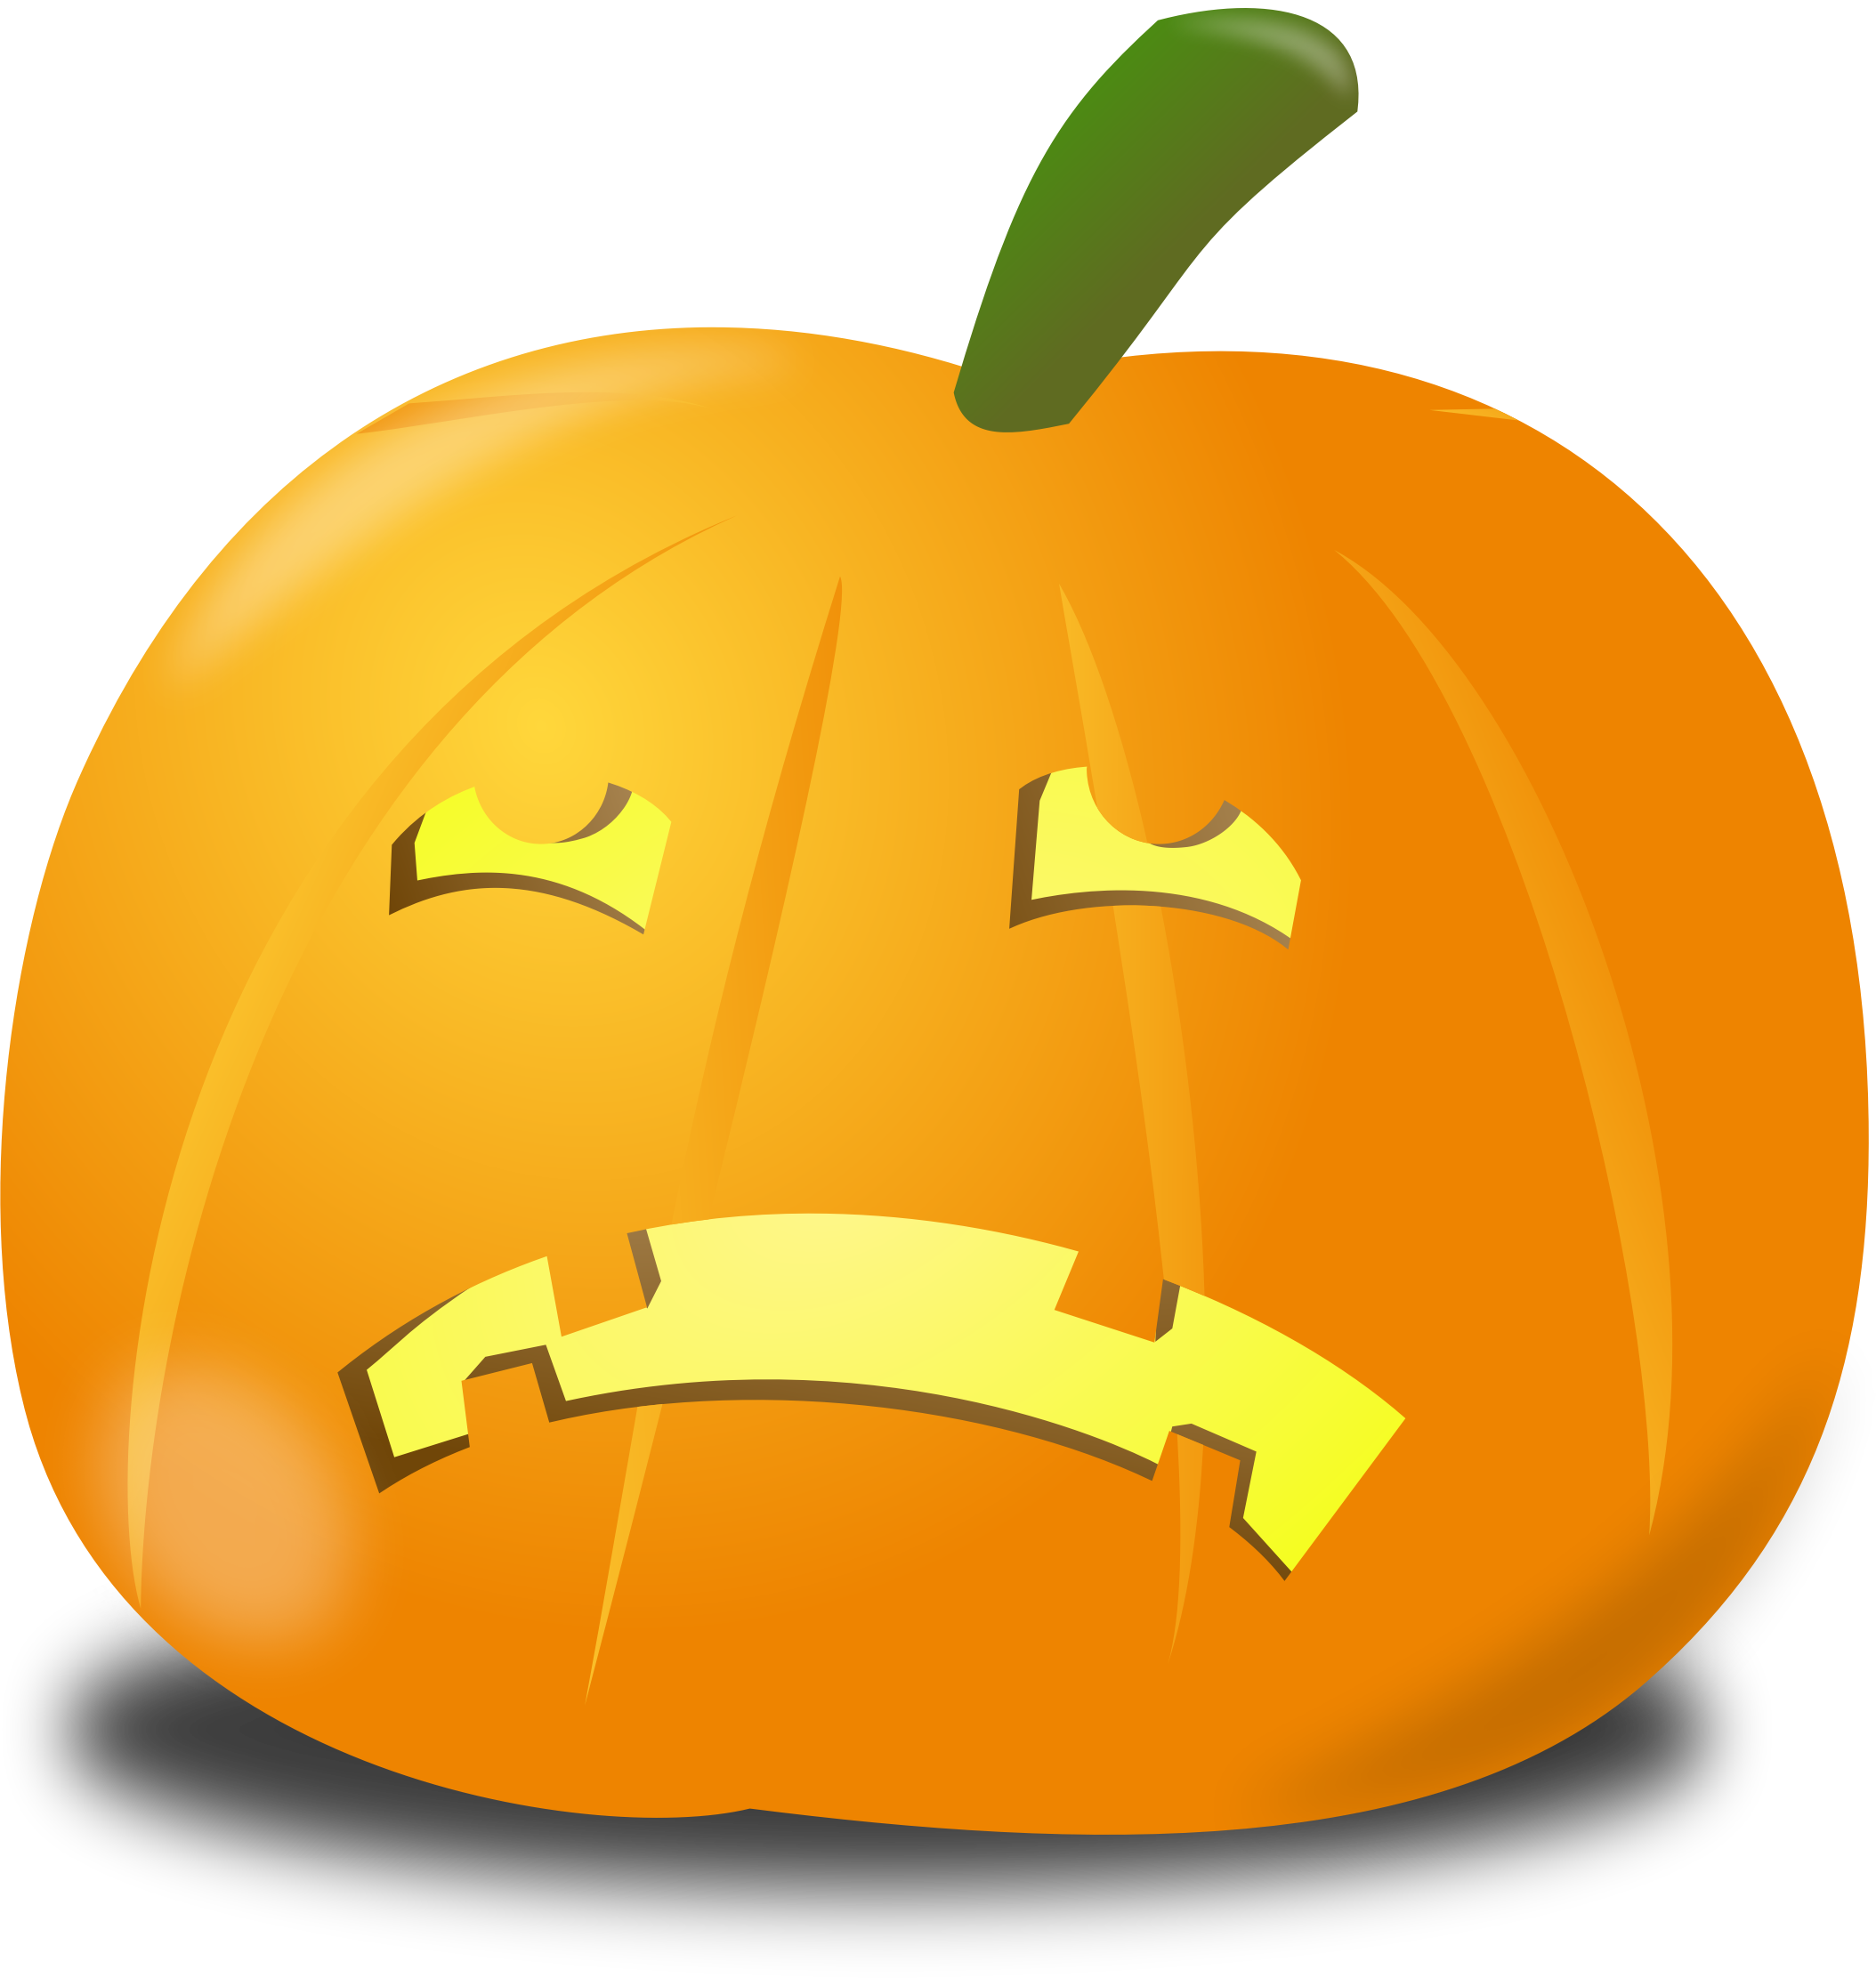 Spooky Halloween Pumpkins messages sticker-11